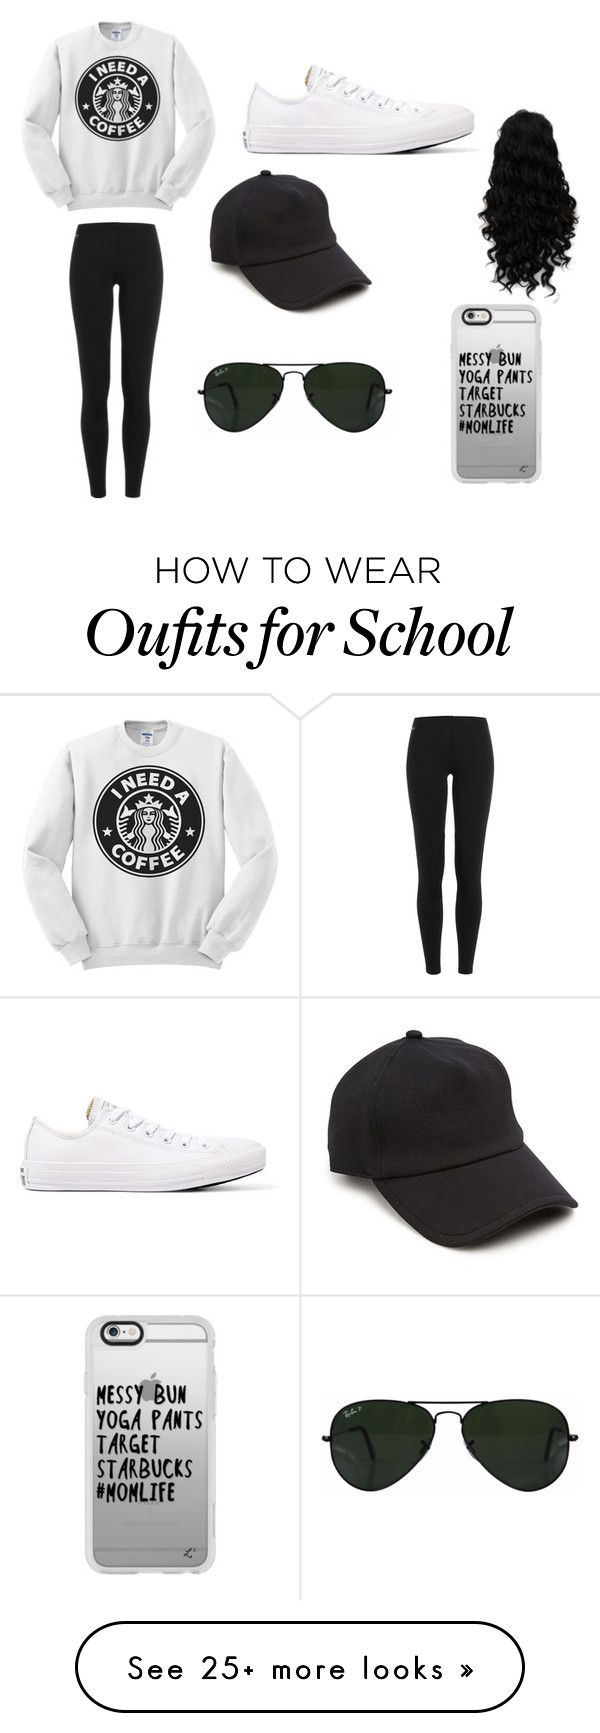 school outfit by jocelyn-bean on Polyvore featuring Polo Ralph Lauren, Converse, rag  bone, Ray-Ban and Casetify